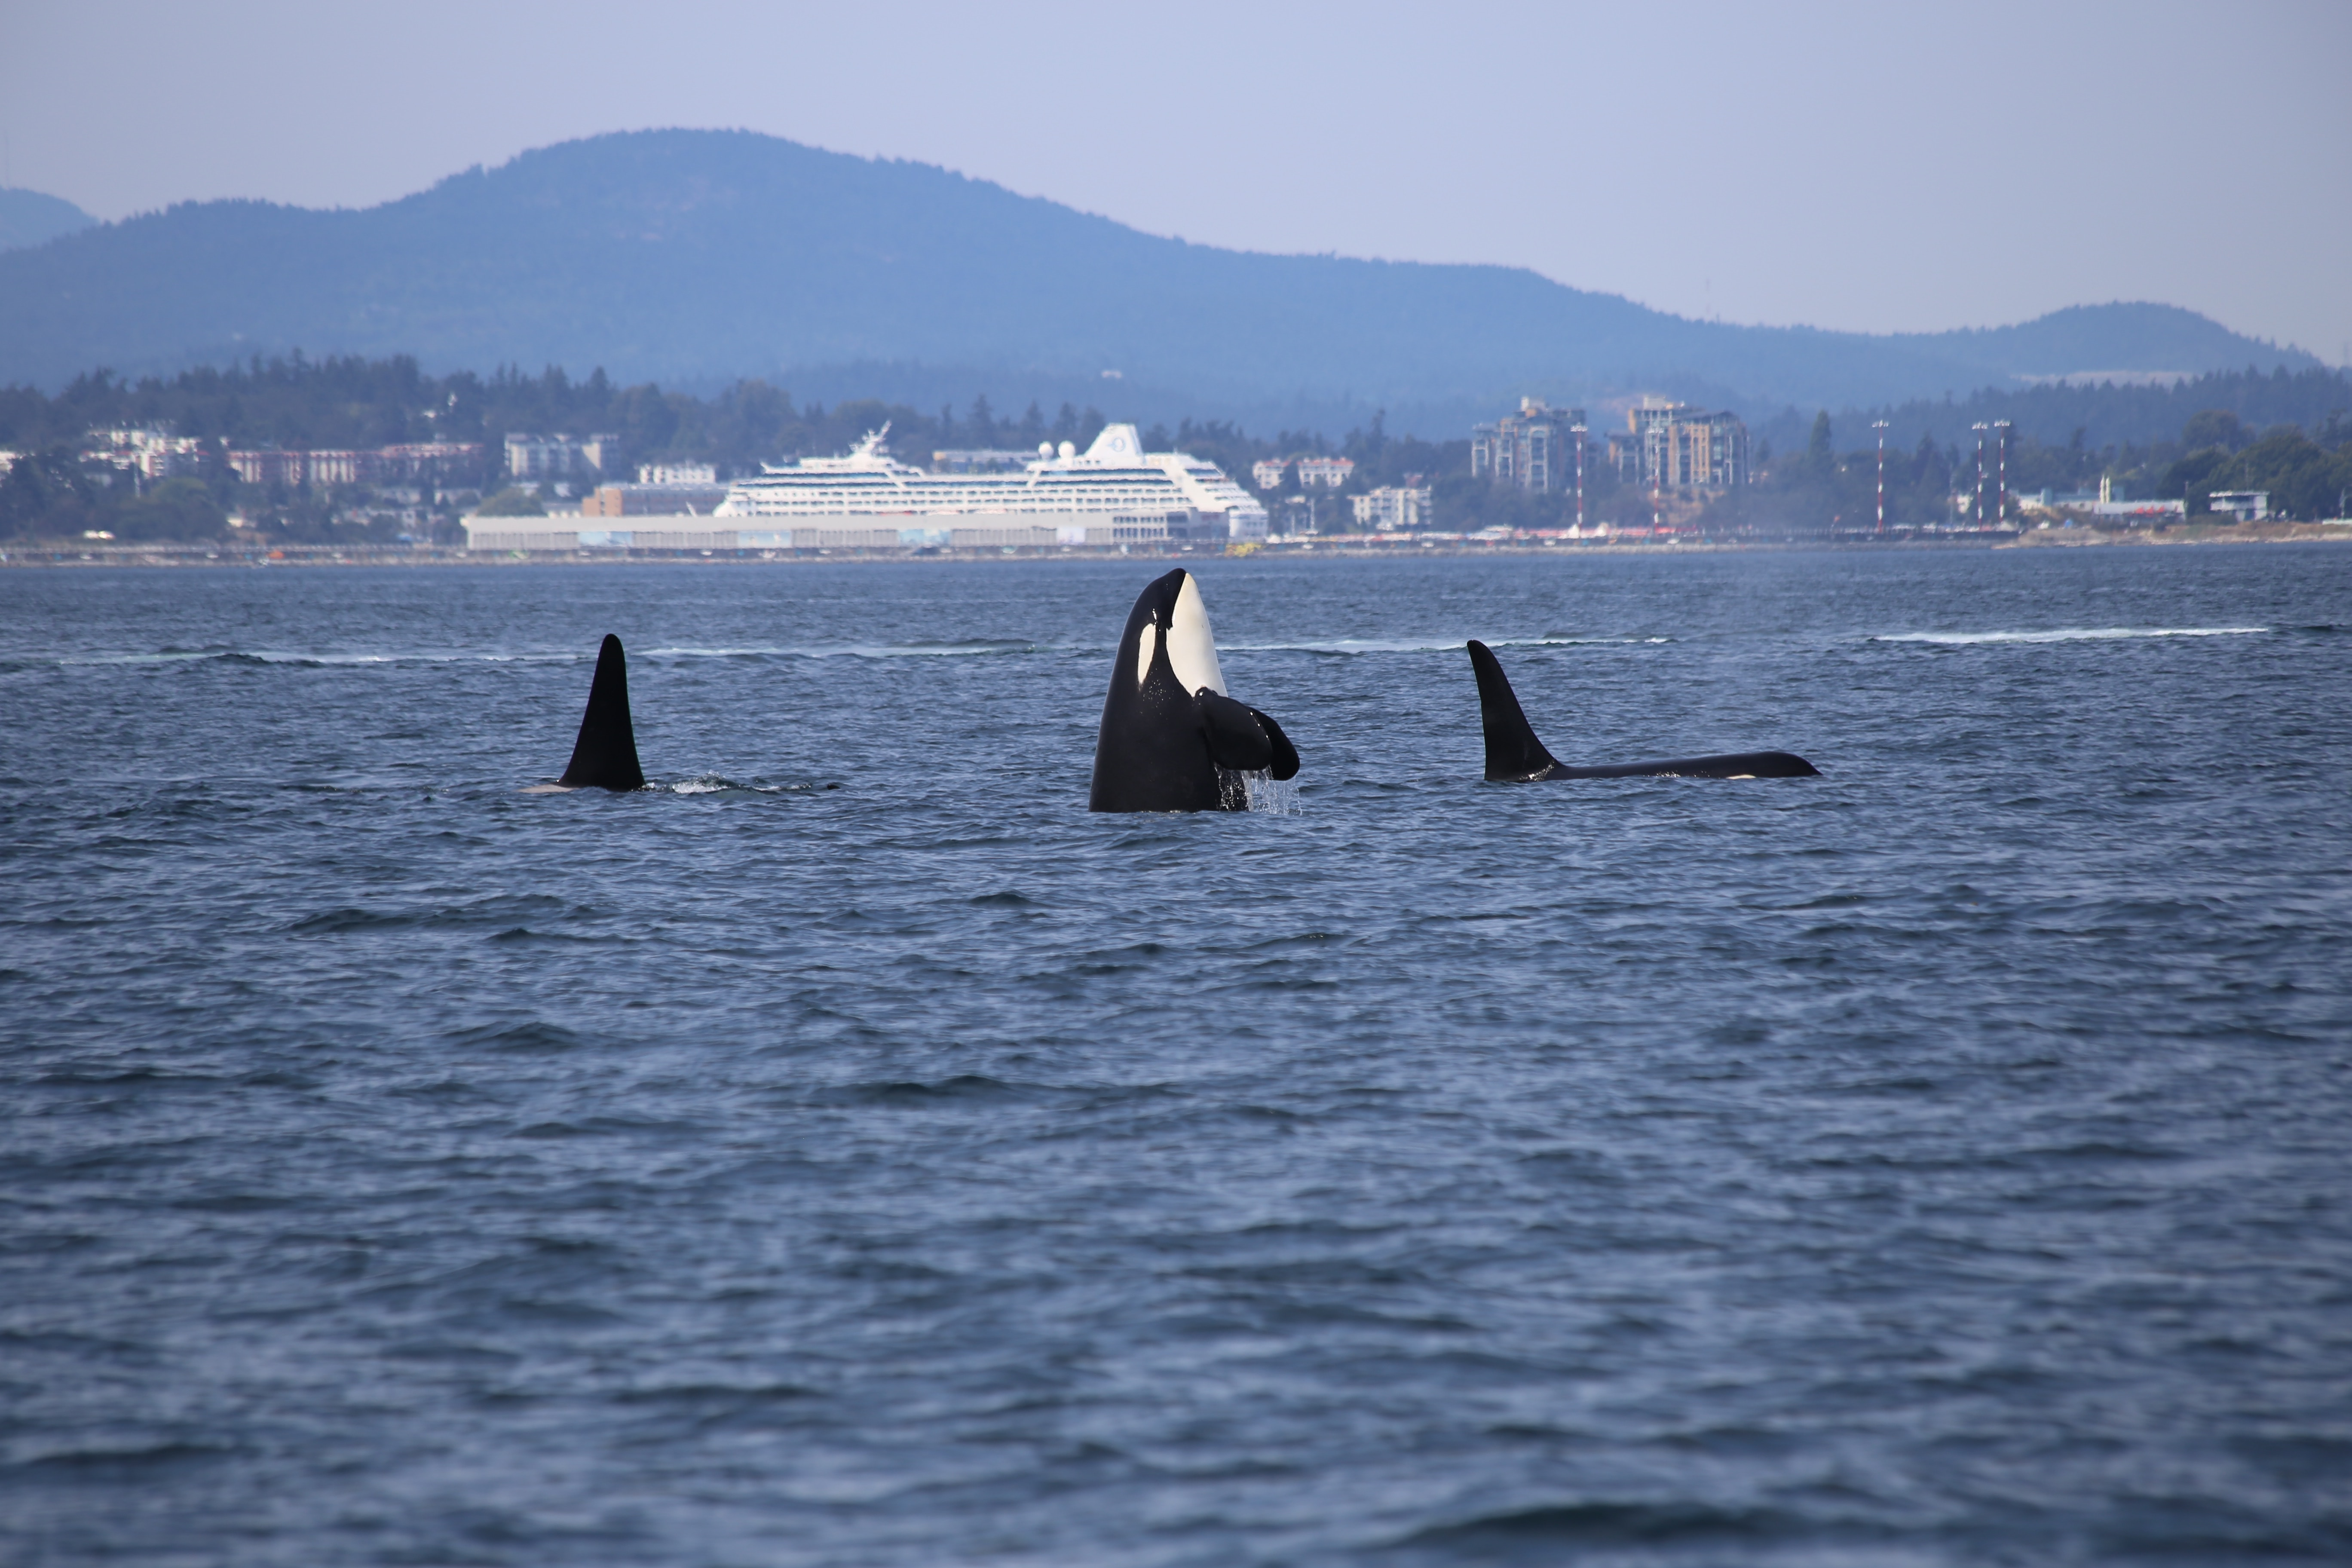 Cheap flights to Canada, cheap flights to Vancouver, orcas in canada